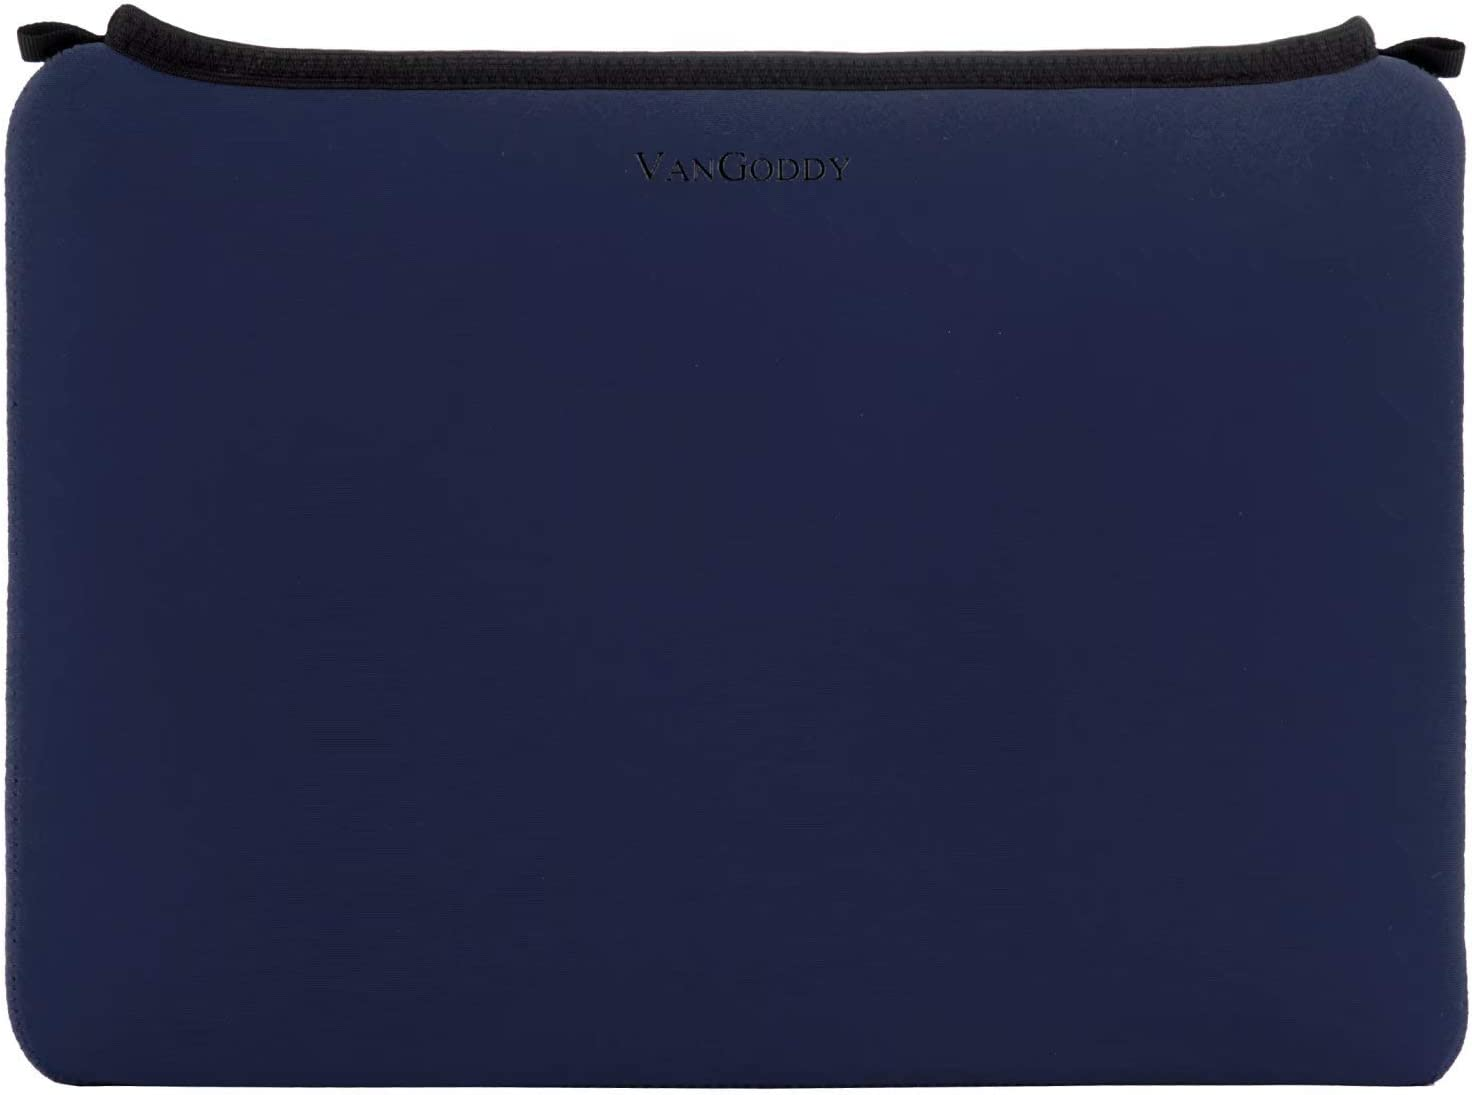 15.6 Inch Laptop Sleeve for Dell Latitude 3510 5510 5511 5520 7520 9510, Vostro 3500 5501 5502 7500